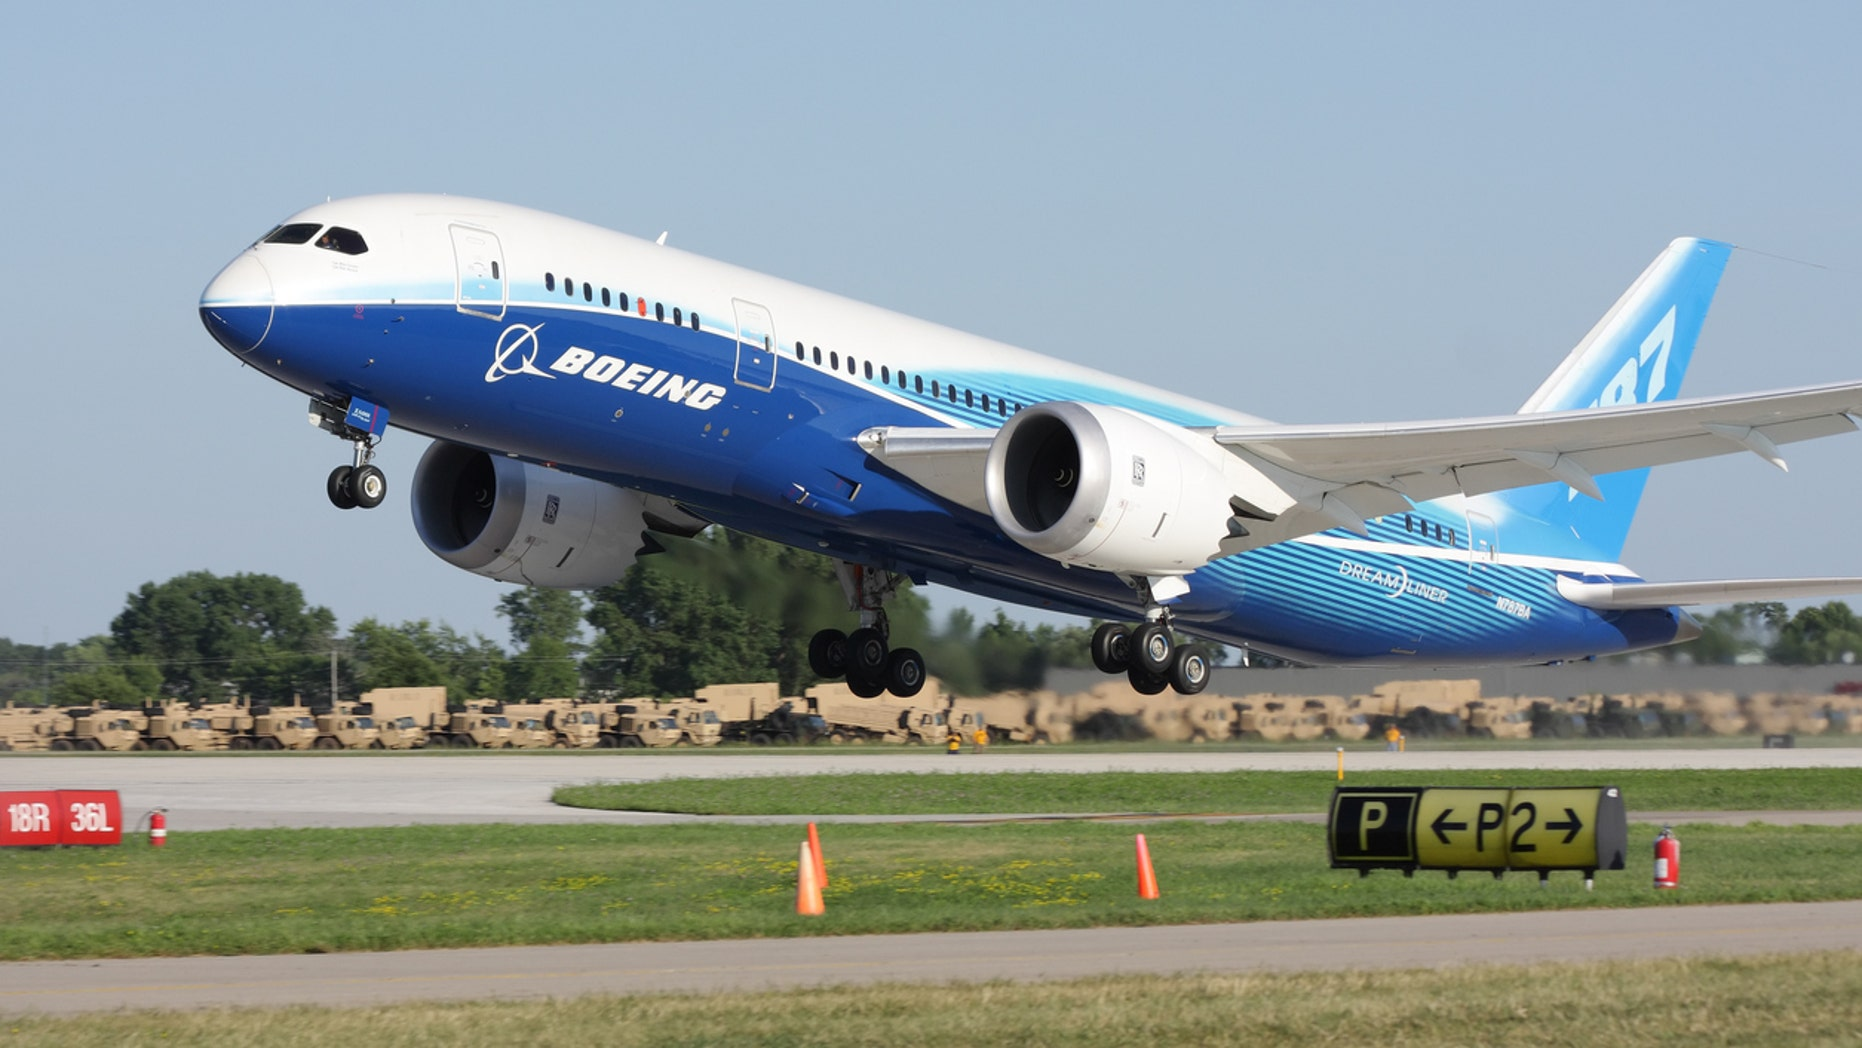 Boeing's Dreamliner painted a pretty pictures of itself in the sky.